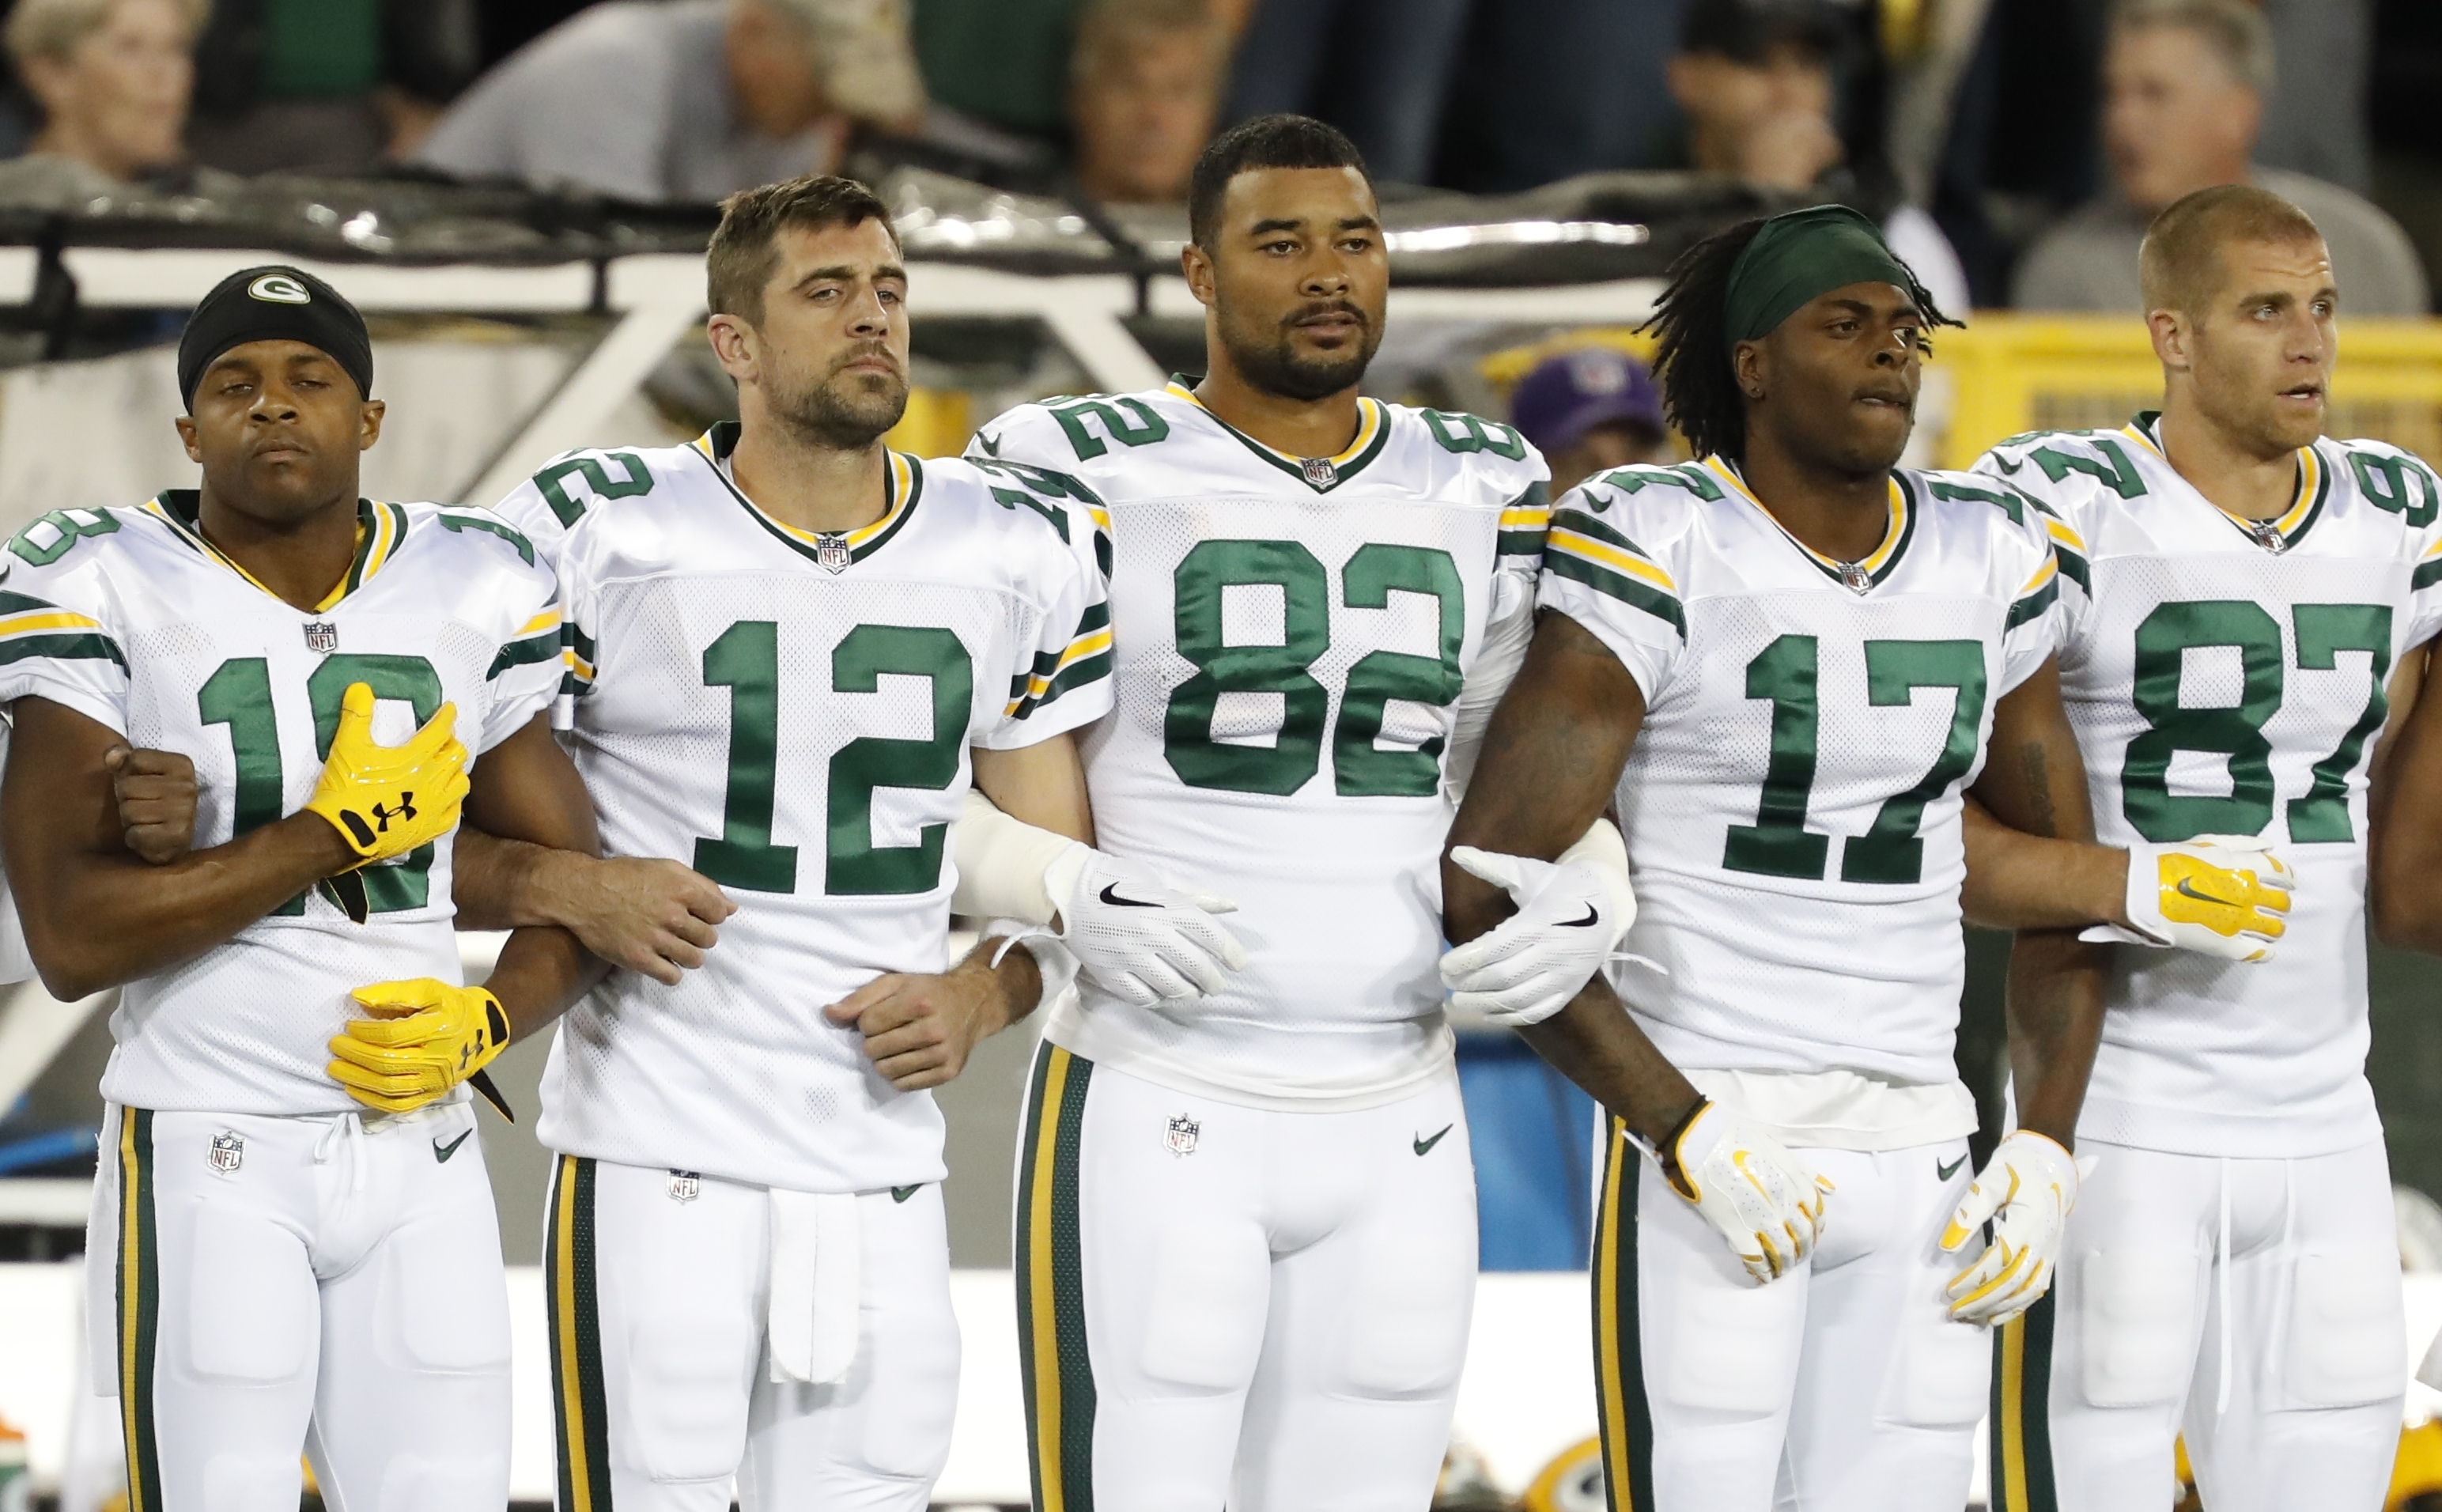 Green Bay Packers link arms during the national anthem before a game against the Chicago Bears Thursday, Sept. 28, 2017, in Green Bay. (AP Photo/Matt Ludtke)